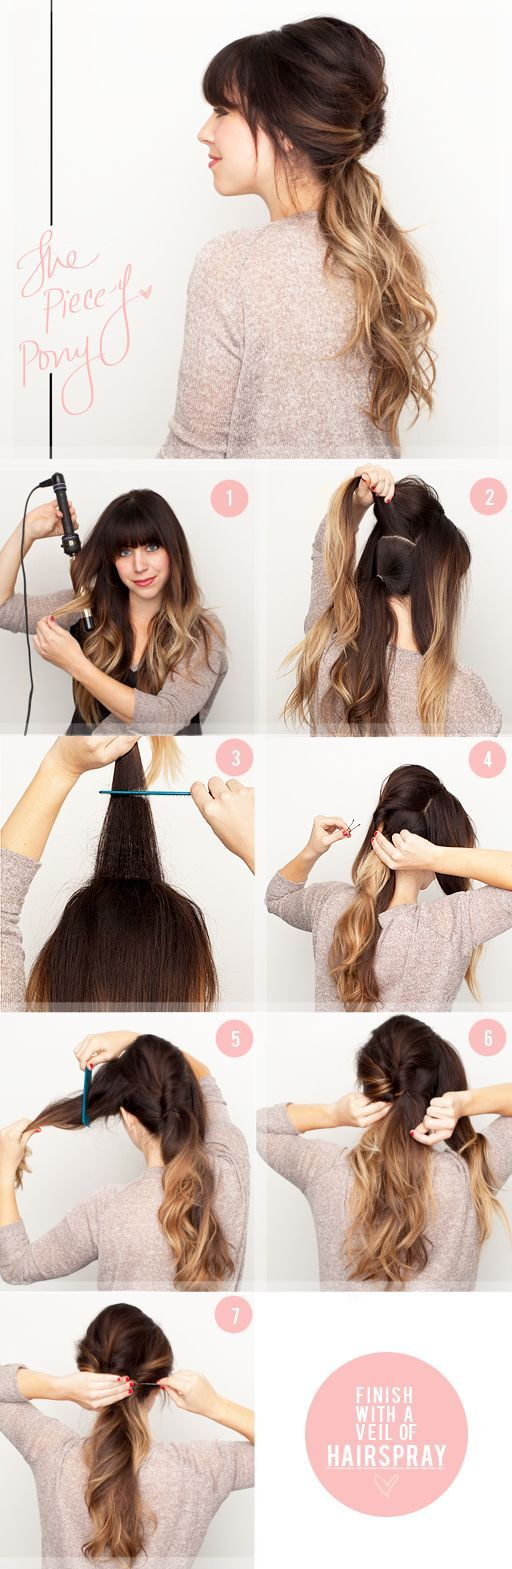 5 DIY Hairstyles: Hair Ideas, Pony Tail, Ponytail, Hairstyles, Hair Styles, Hair Tutorial, Makeup, Hair Color